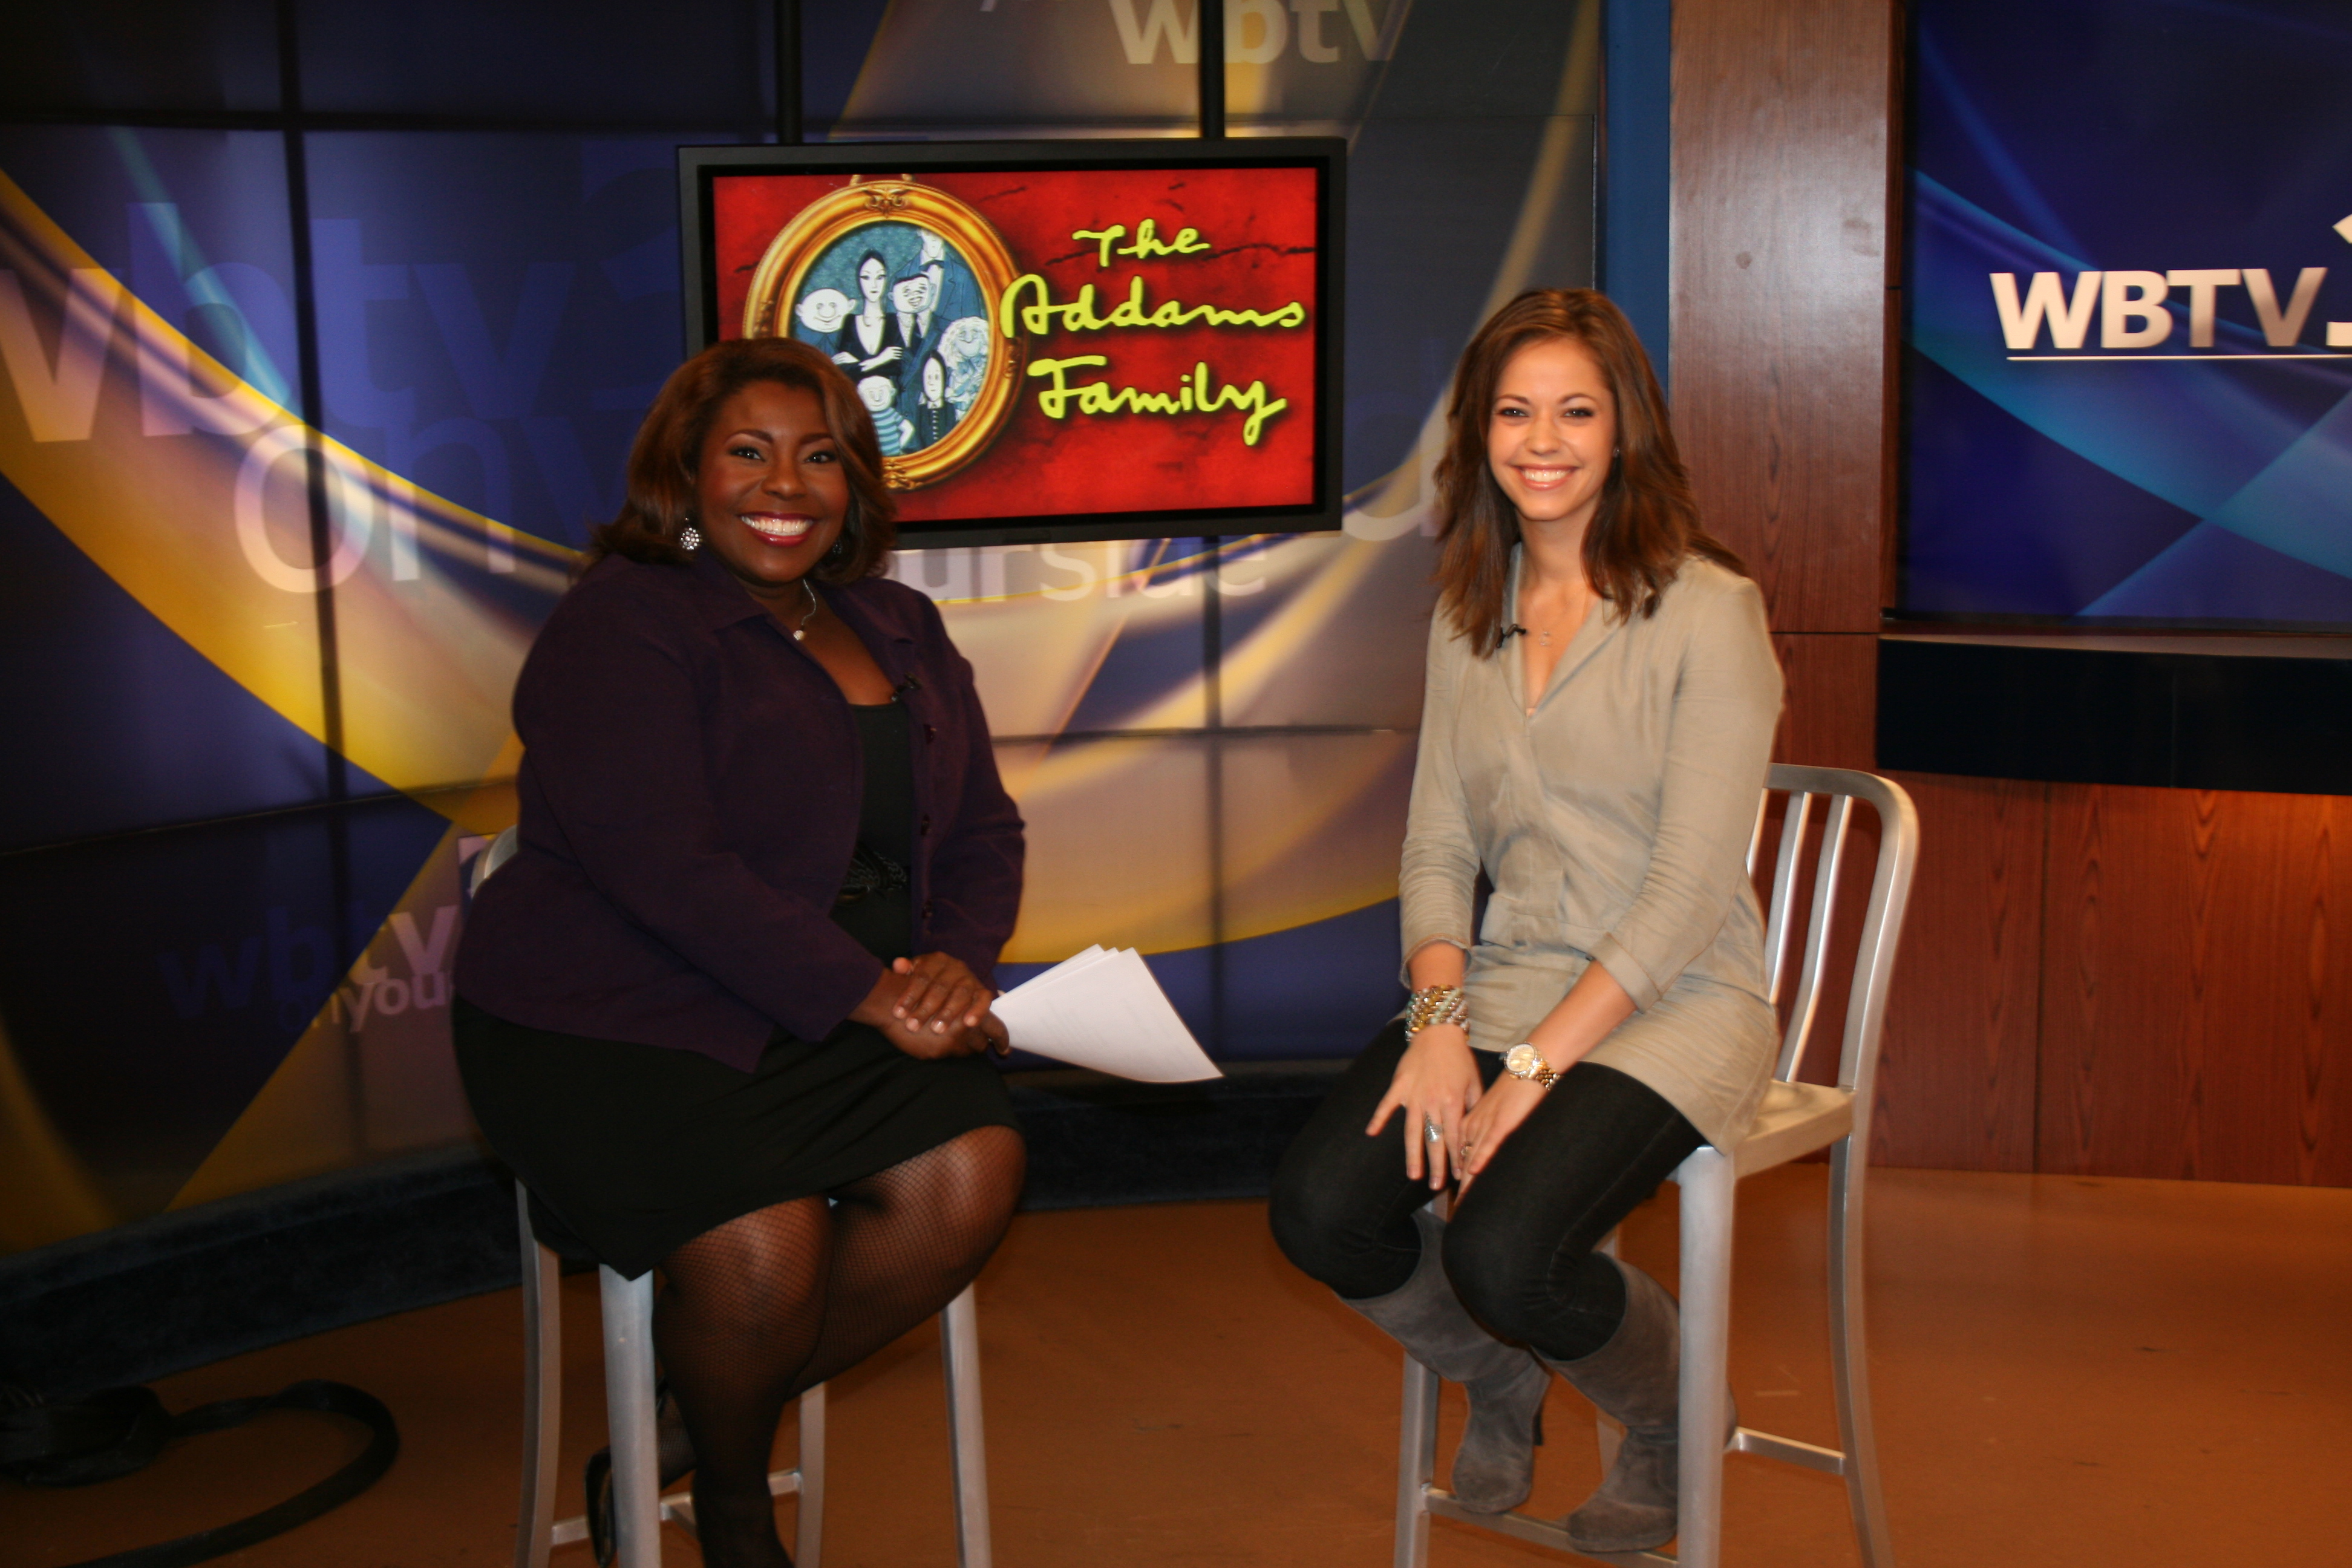 Wbtv Anchors http://blumenthalartsblog.org/2011/10/13/behind-the-scenes-press-day-with-the-addams-family/img_3479/